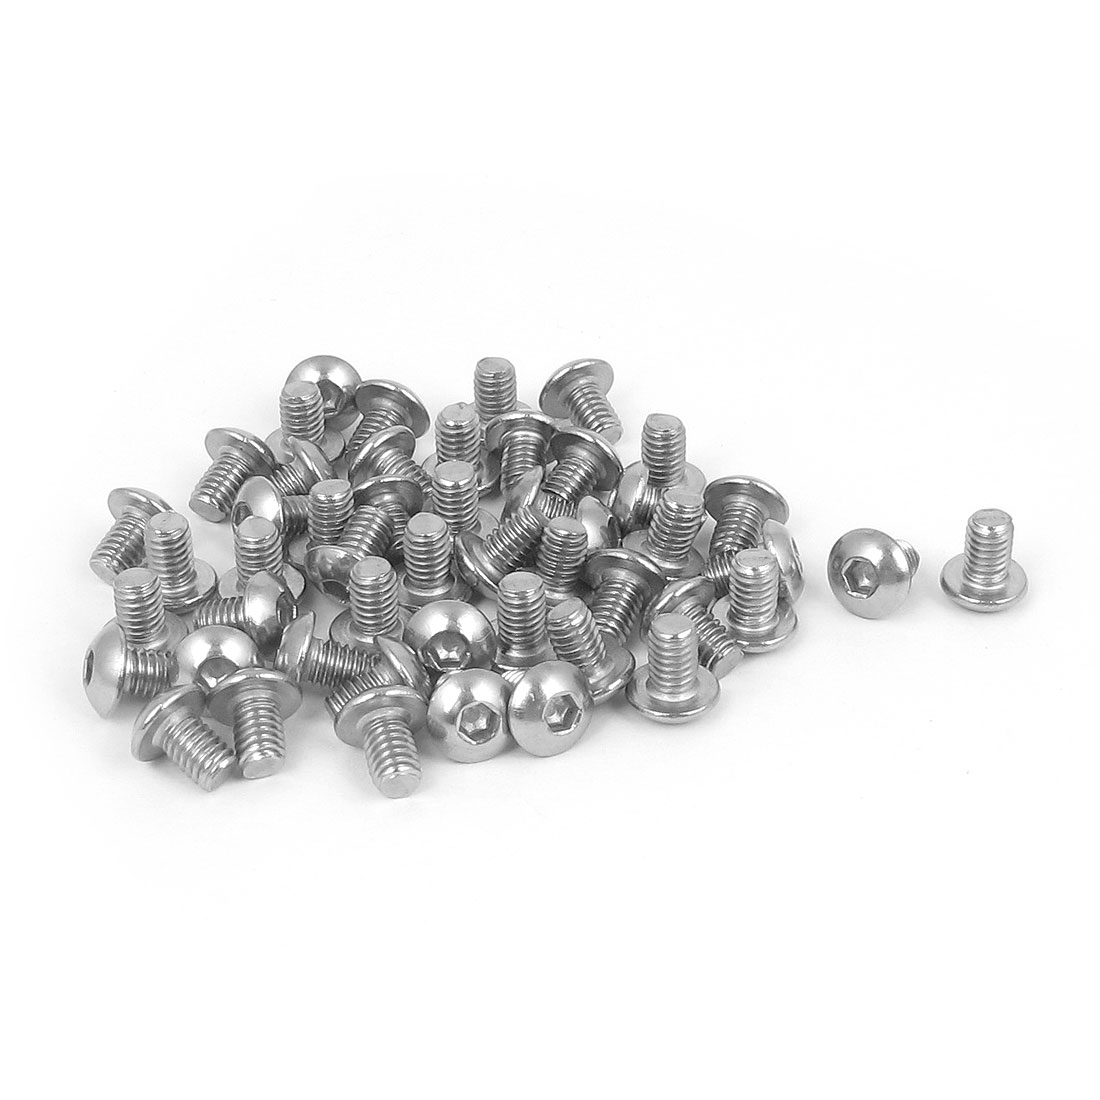 M4x6mm 304 Stainless Steel Hex Socket Machine Countersunk Round Head Screw Bolts 50PCS